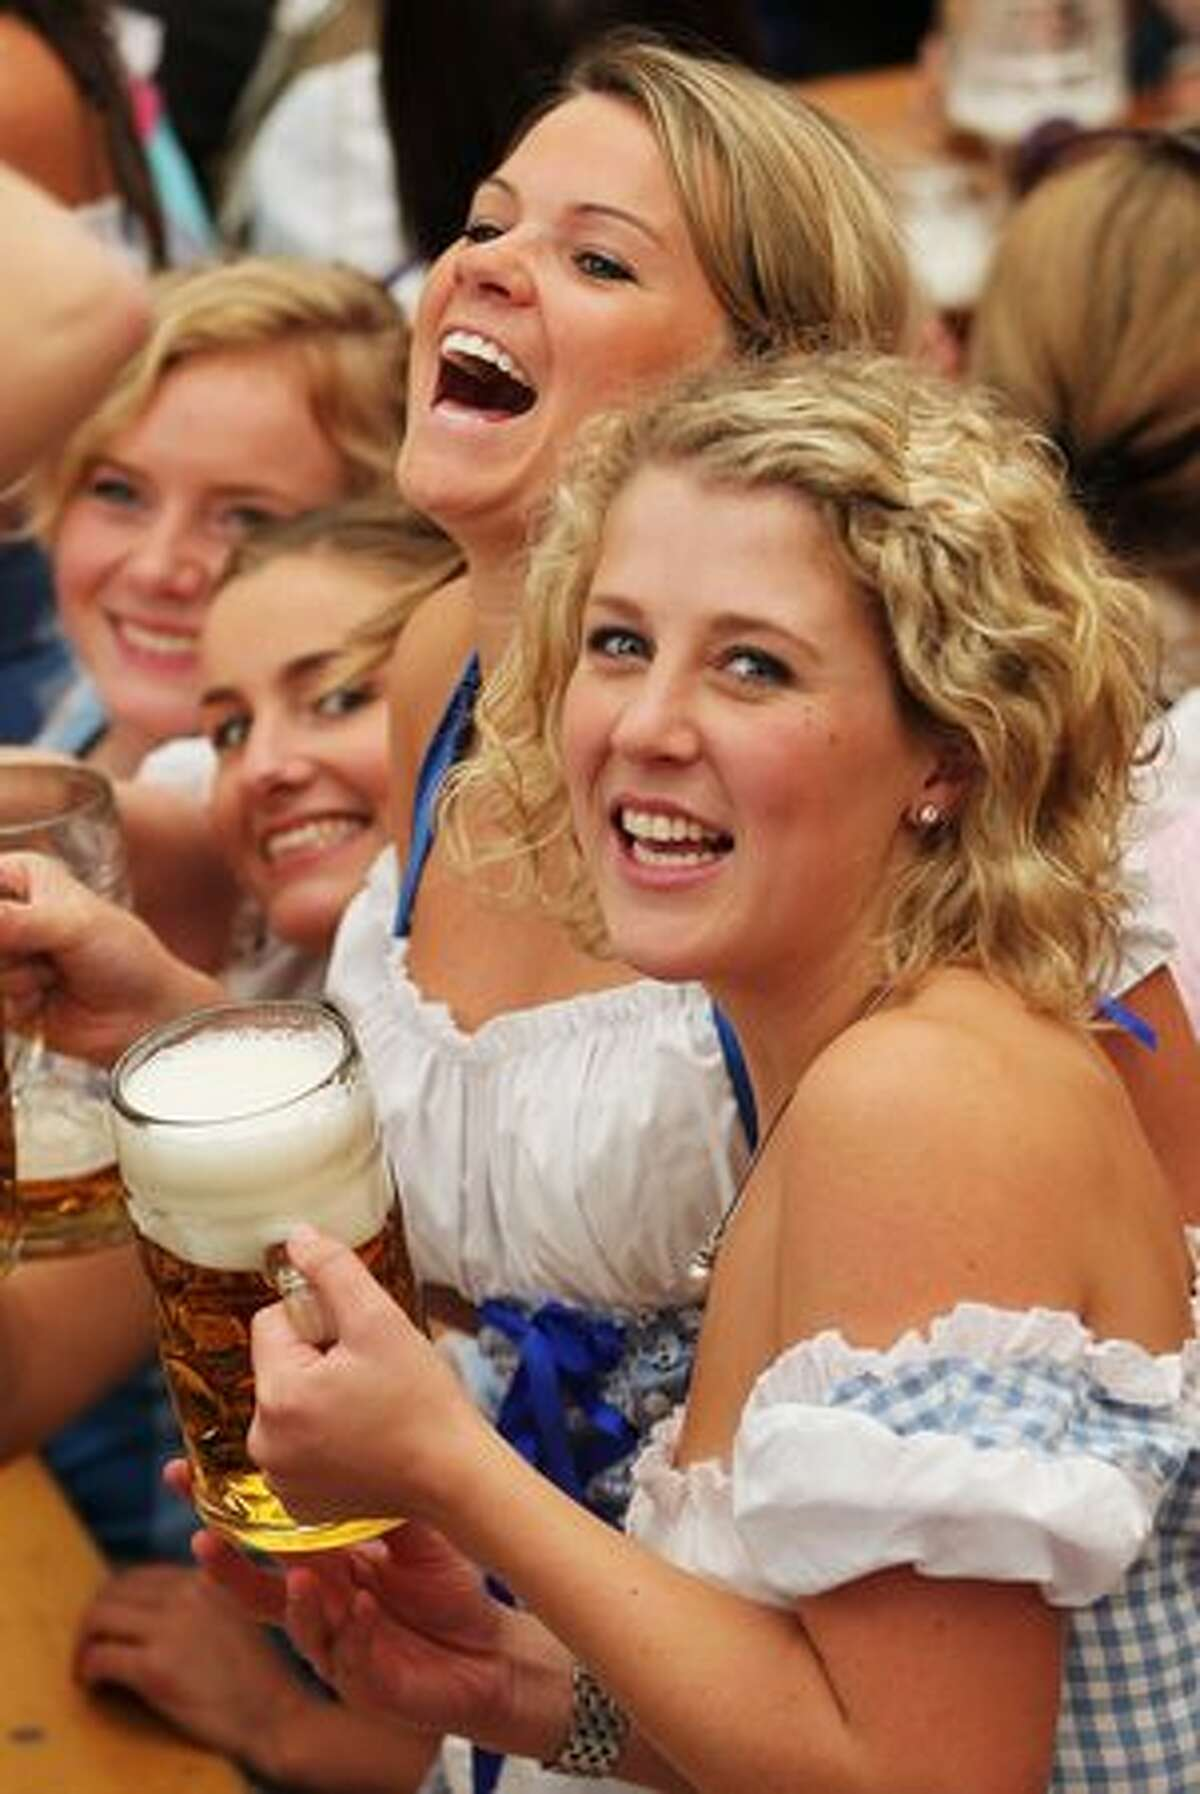 Girls toast with beer mugs during the opening day of the Oktoberfest at Theresienwiese in Munich, Germany.